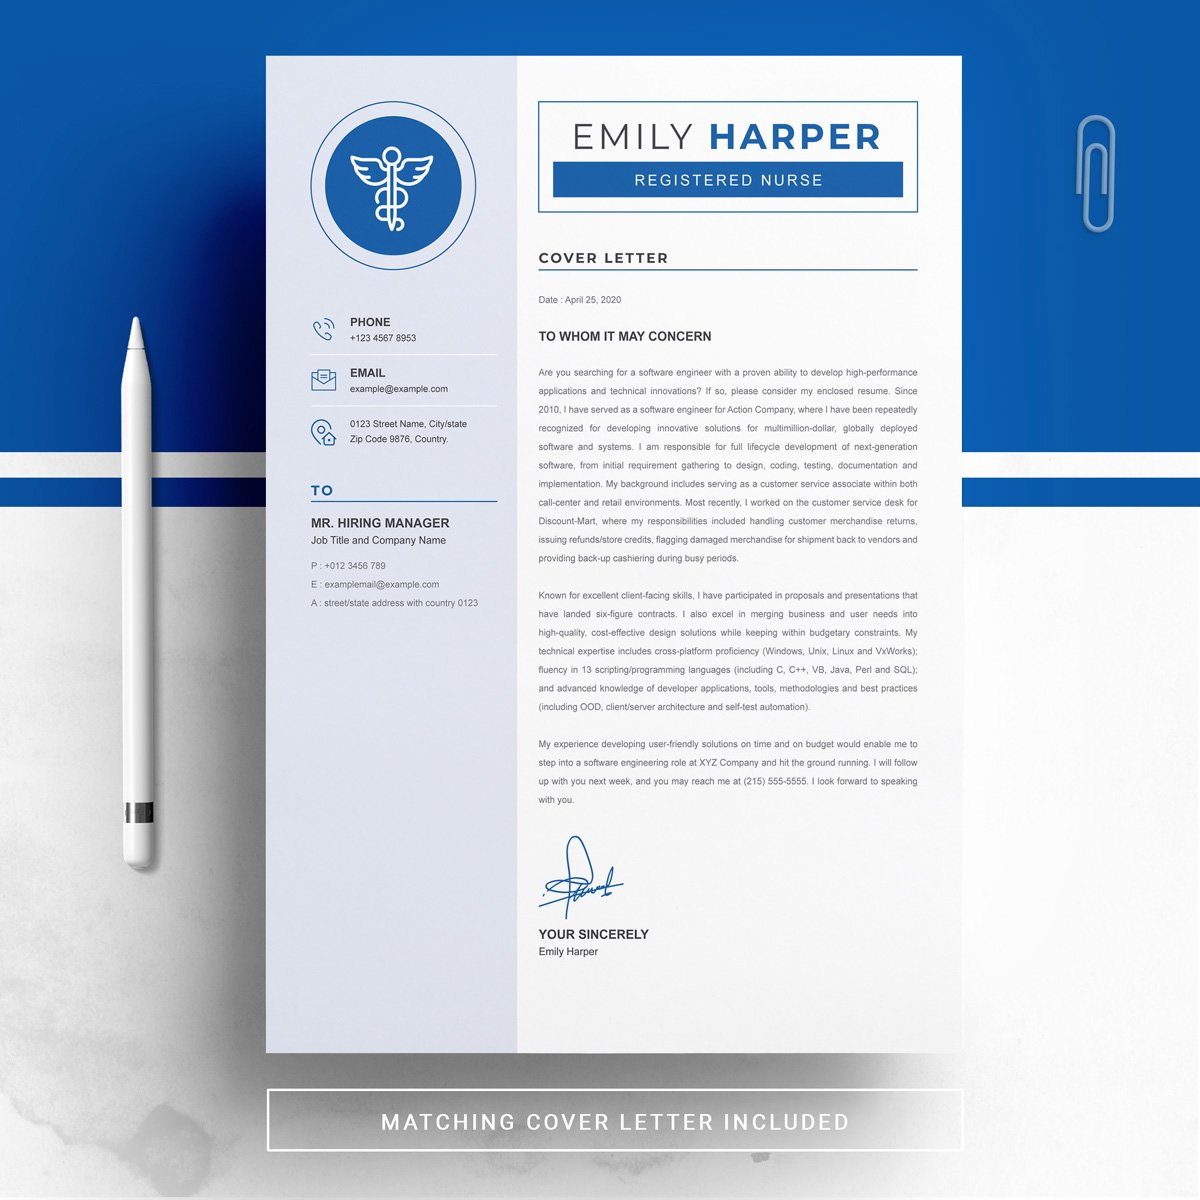 Cover letter's design of this resume. New Nurse Resume CV Template.